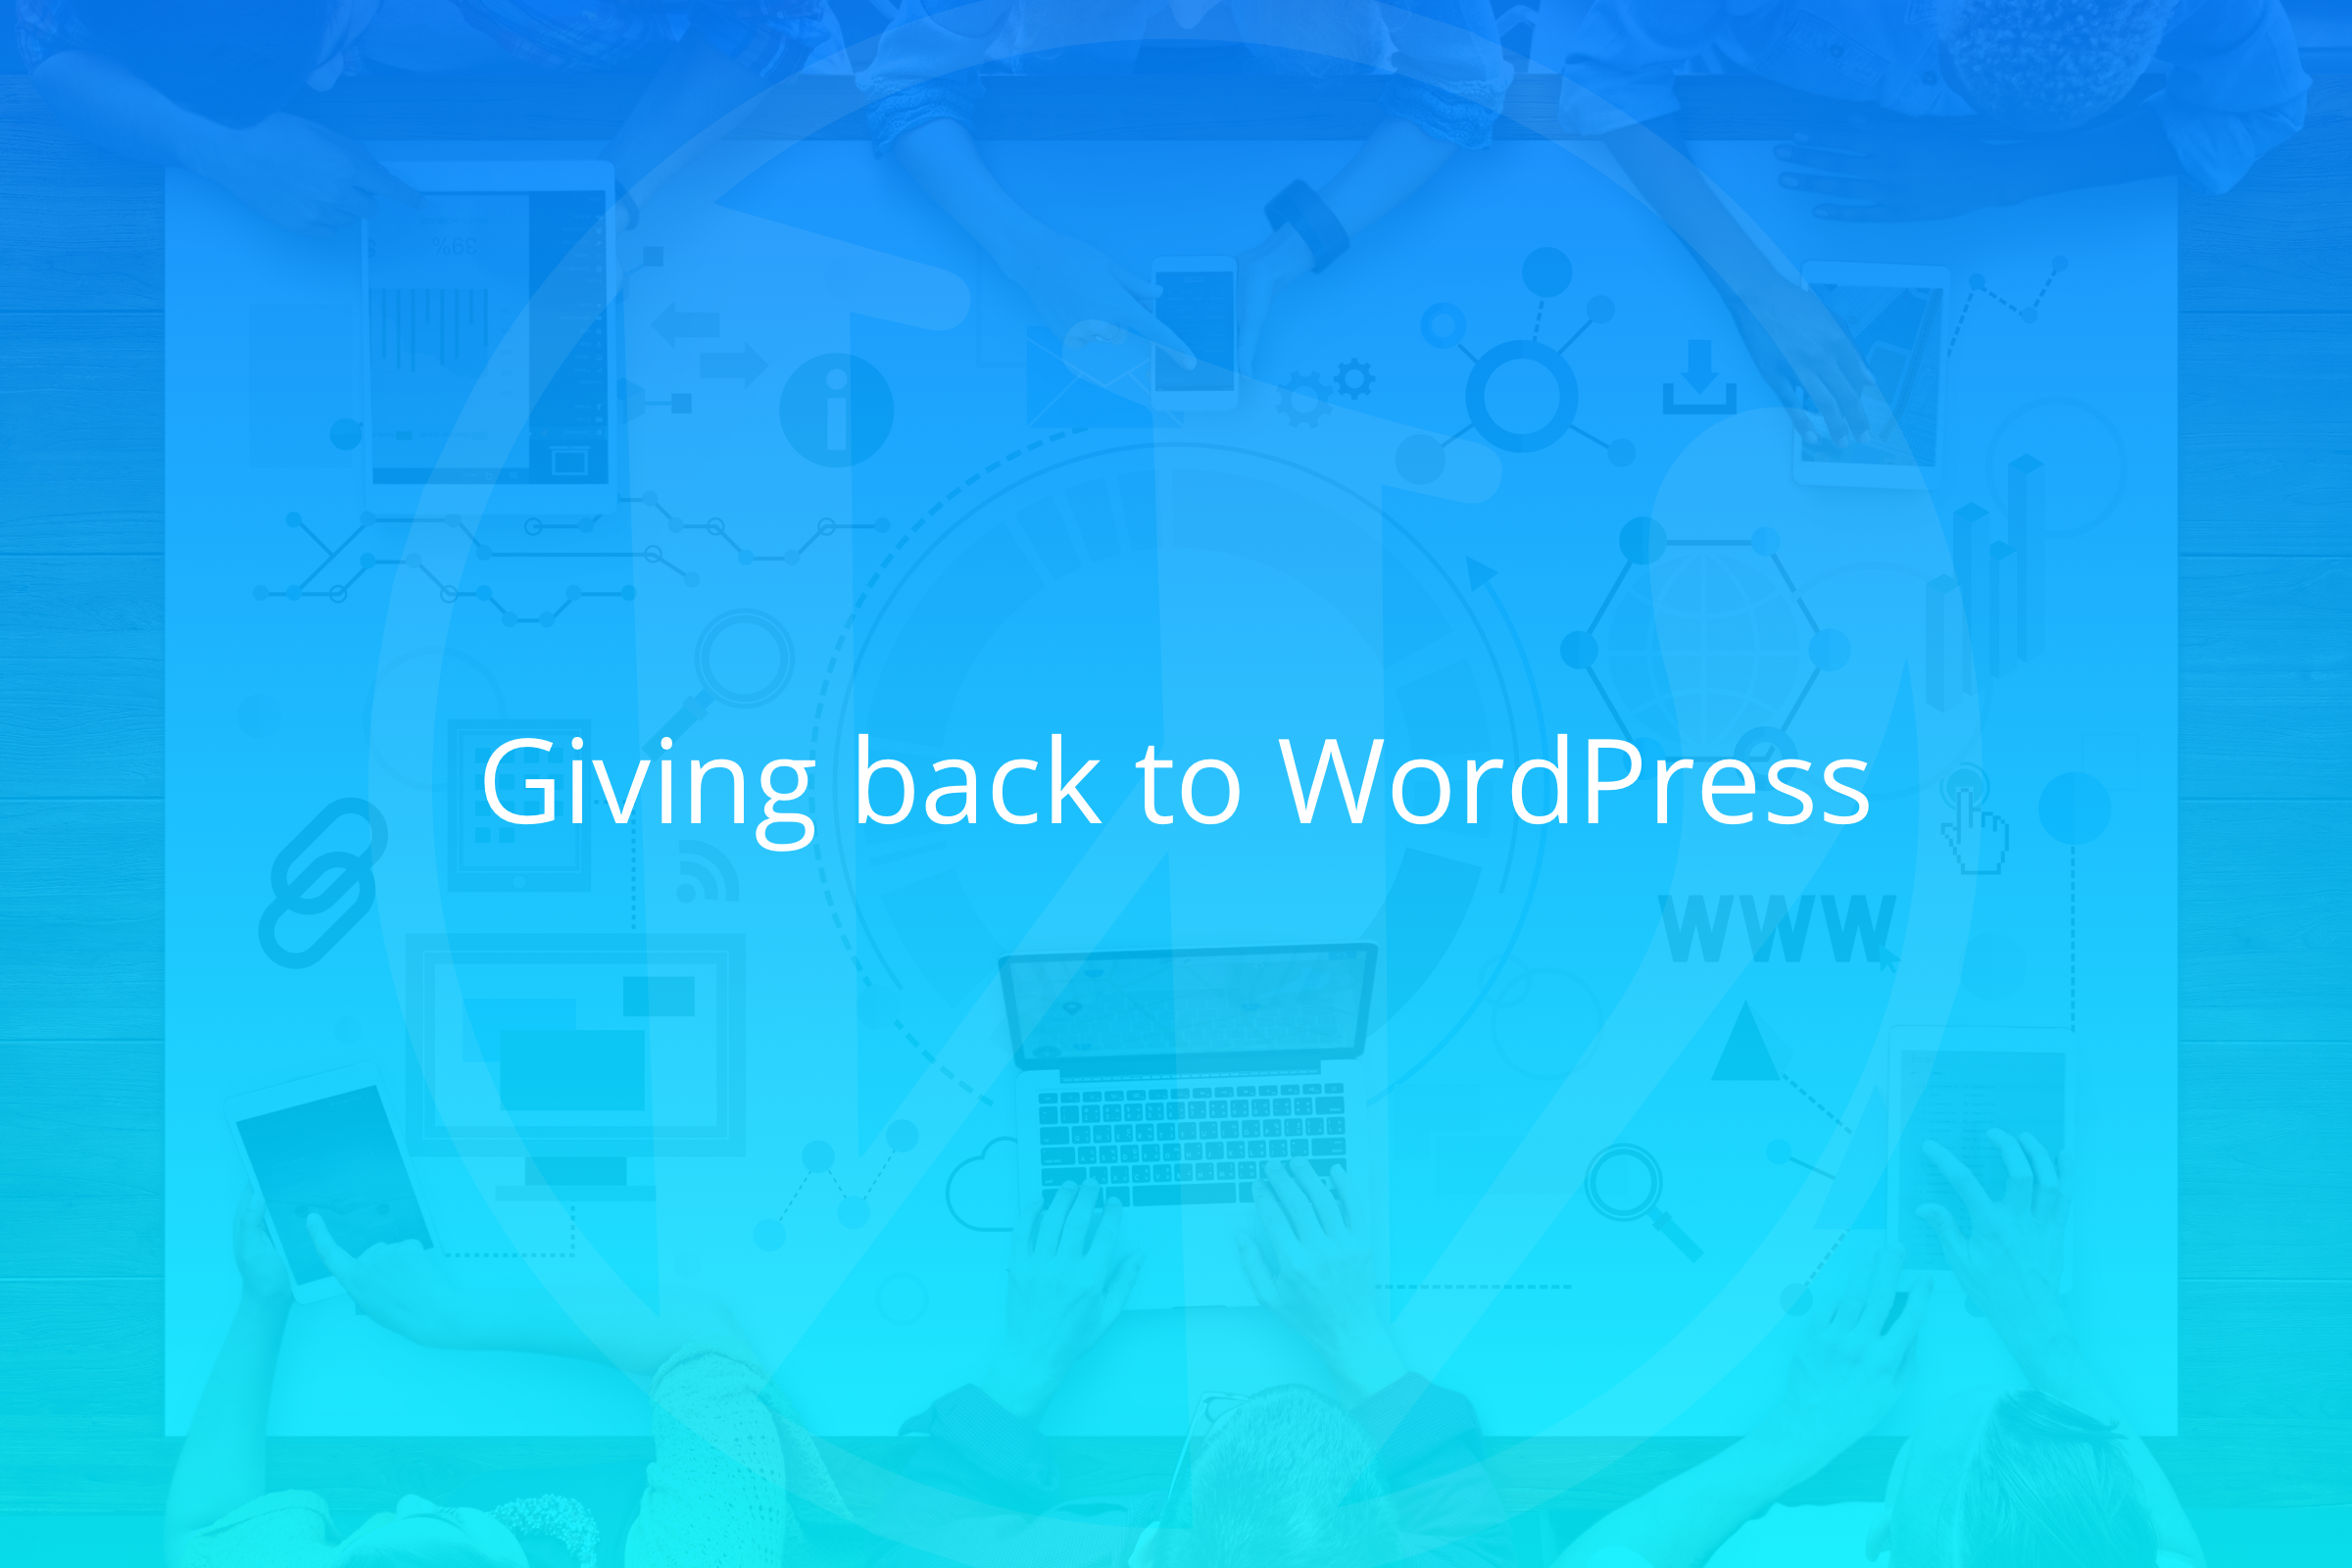 Multidots' Contributions to WordPress: Because Giving away is the way to make a Technology Powerful!